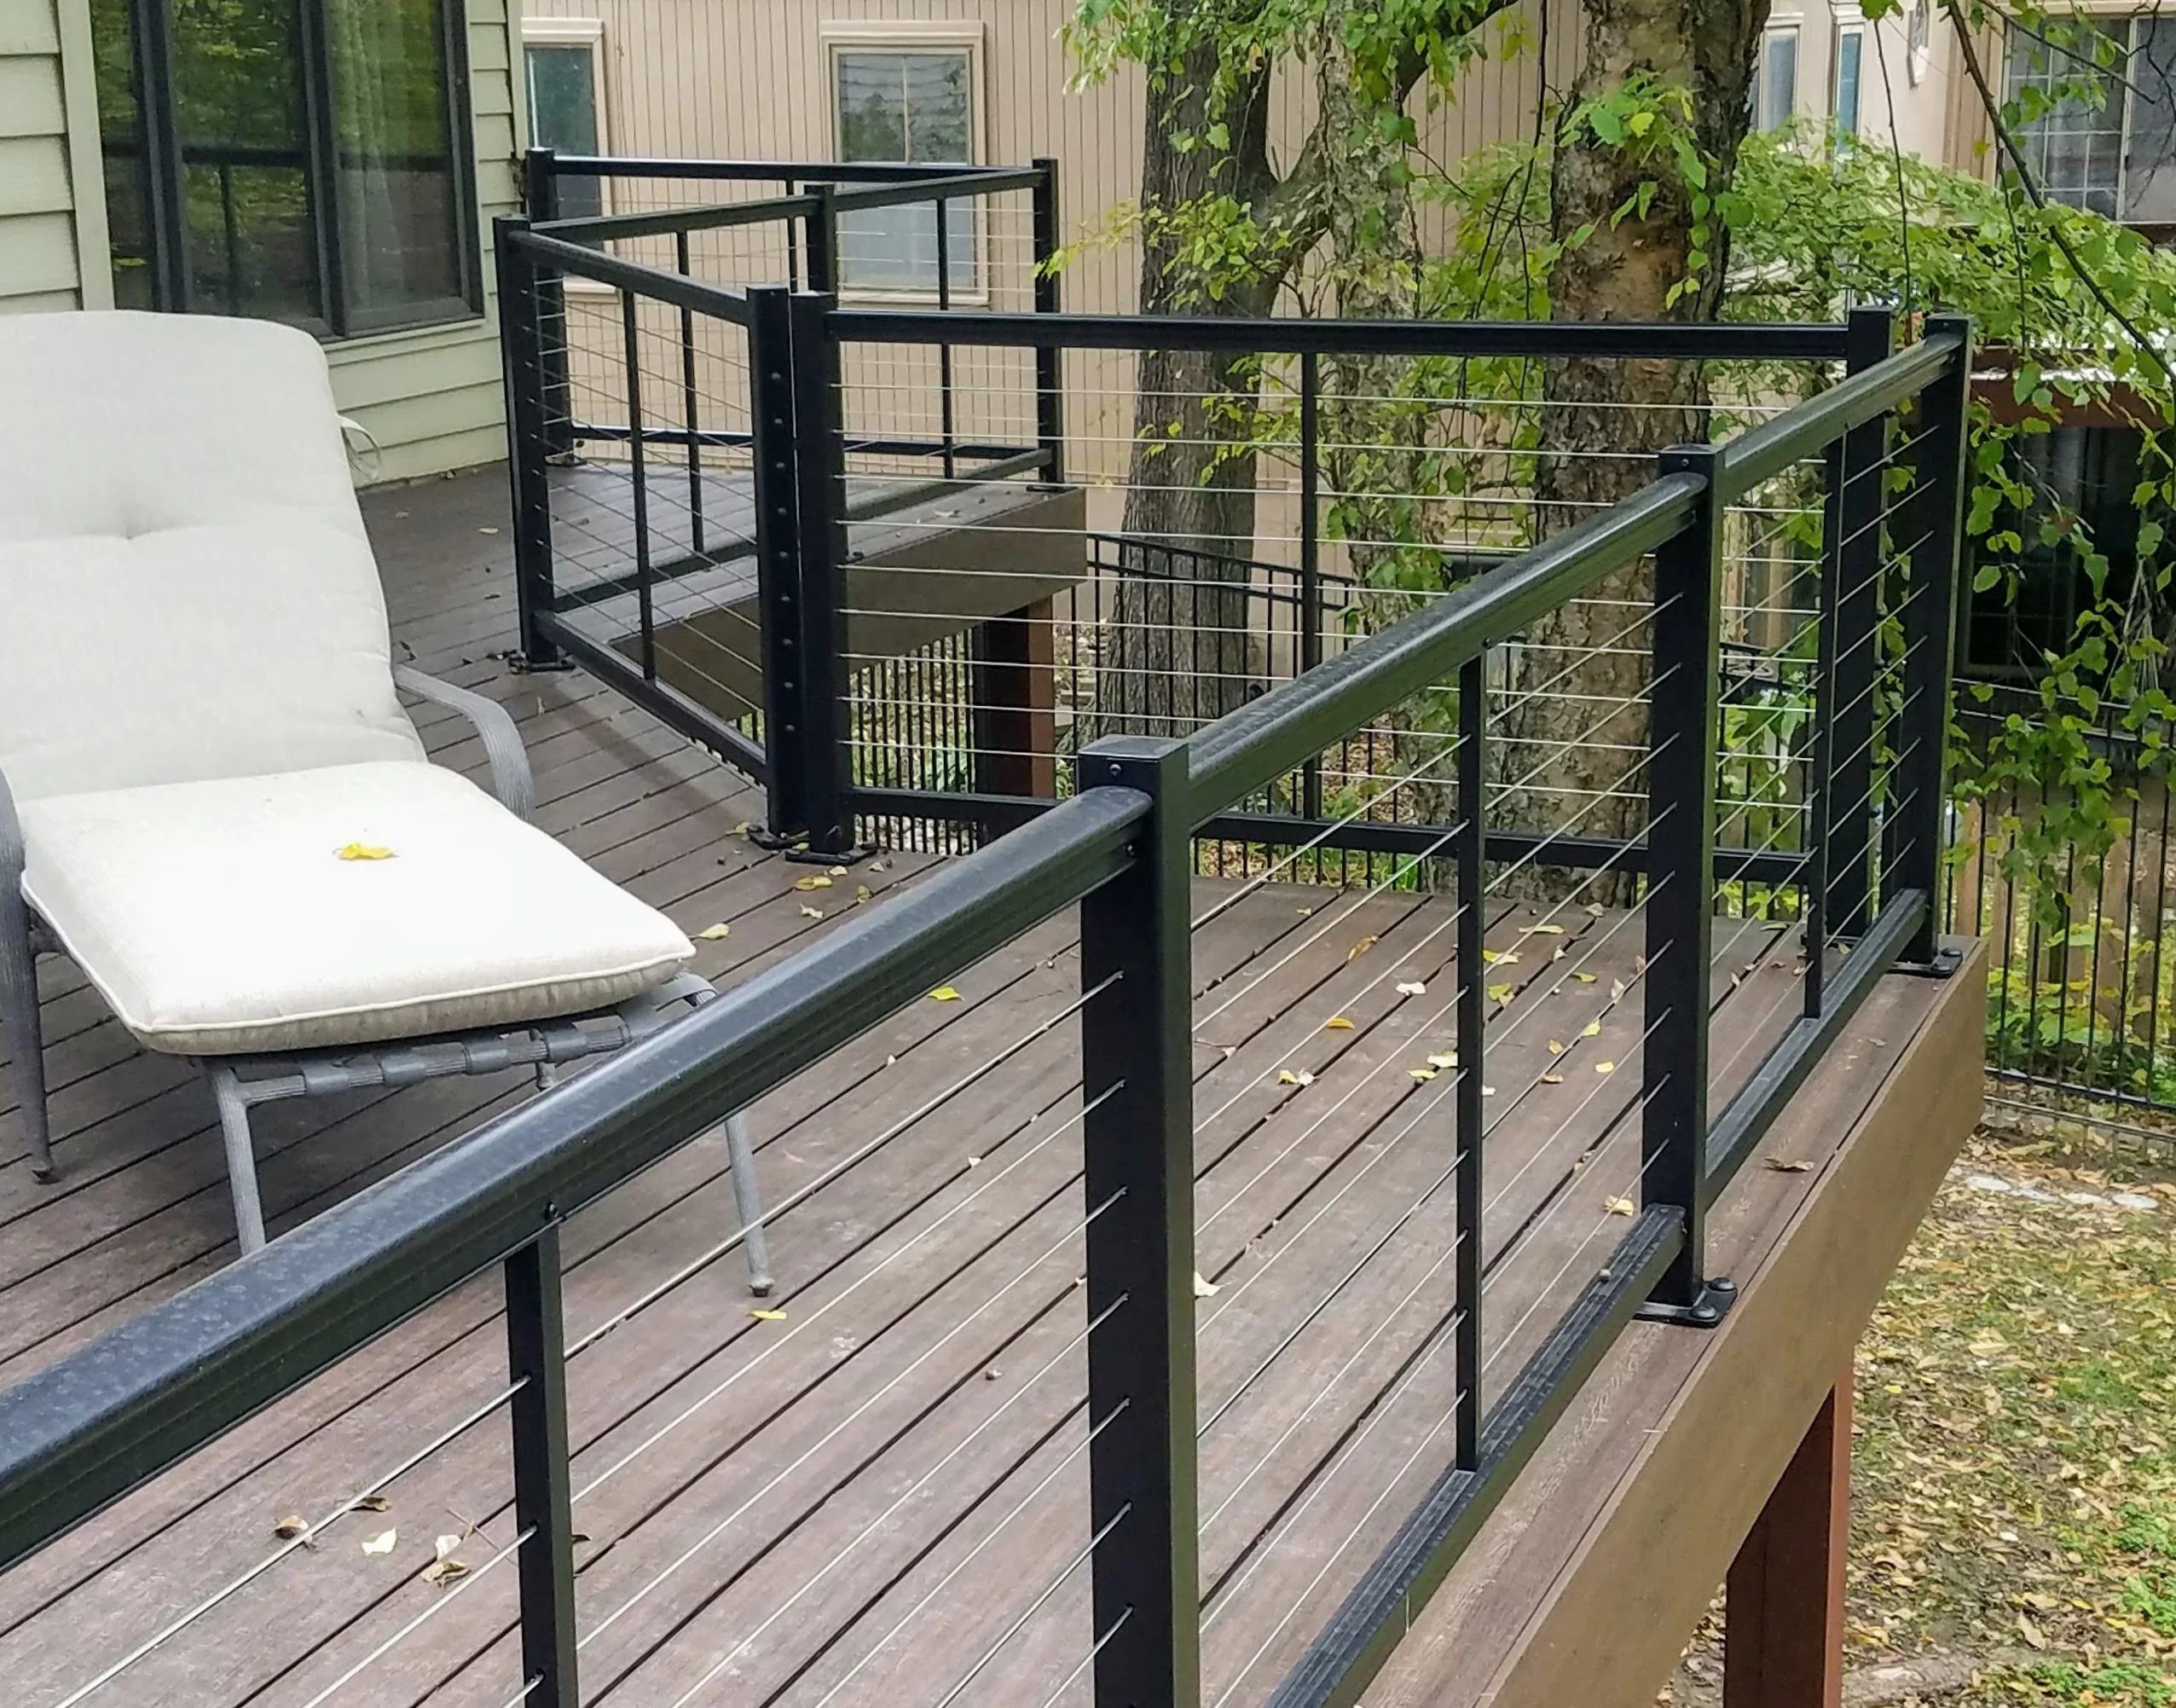 Cable Railing Systems Best Cable Rail Collections – Deck Rail   Metal Handrails For Decks   Small Deck   Outdoor   Residential   Metal Rope   Decorative